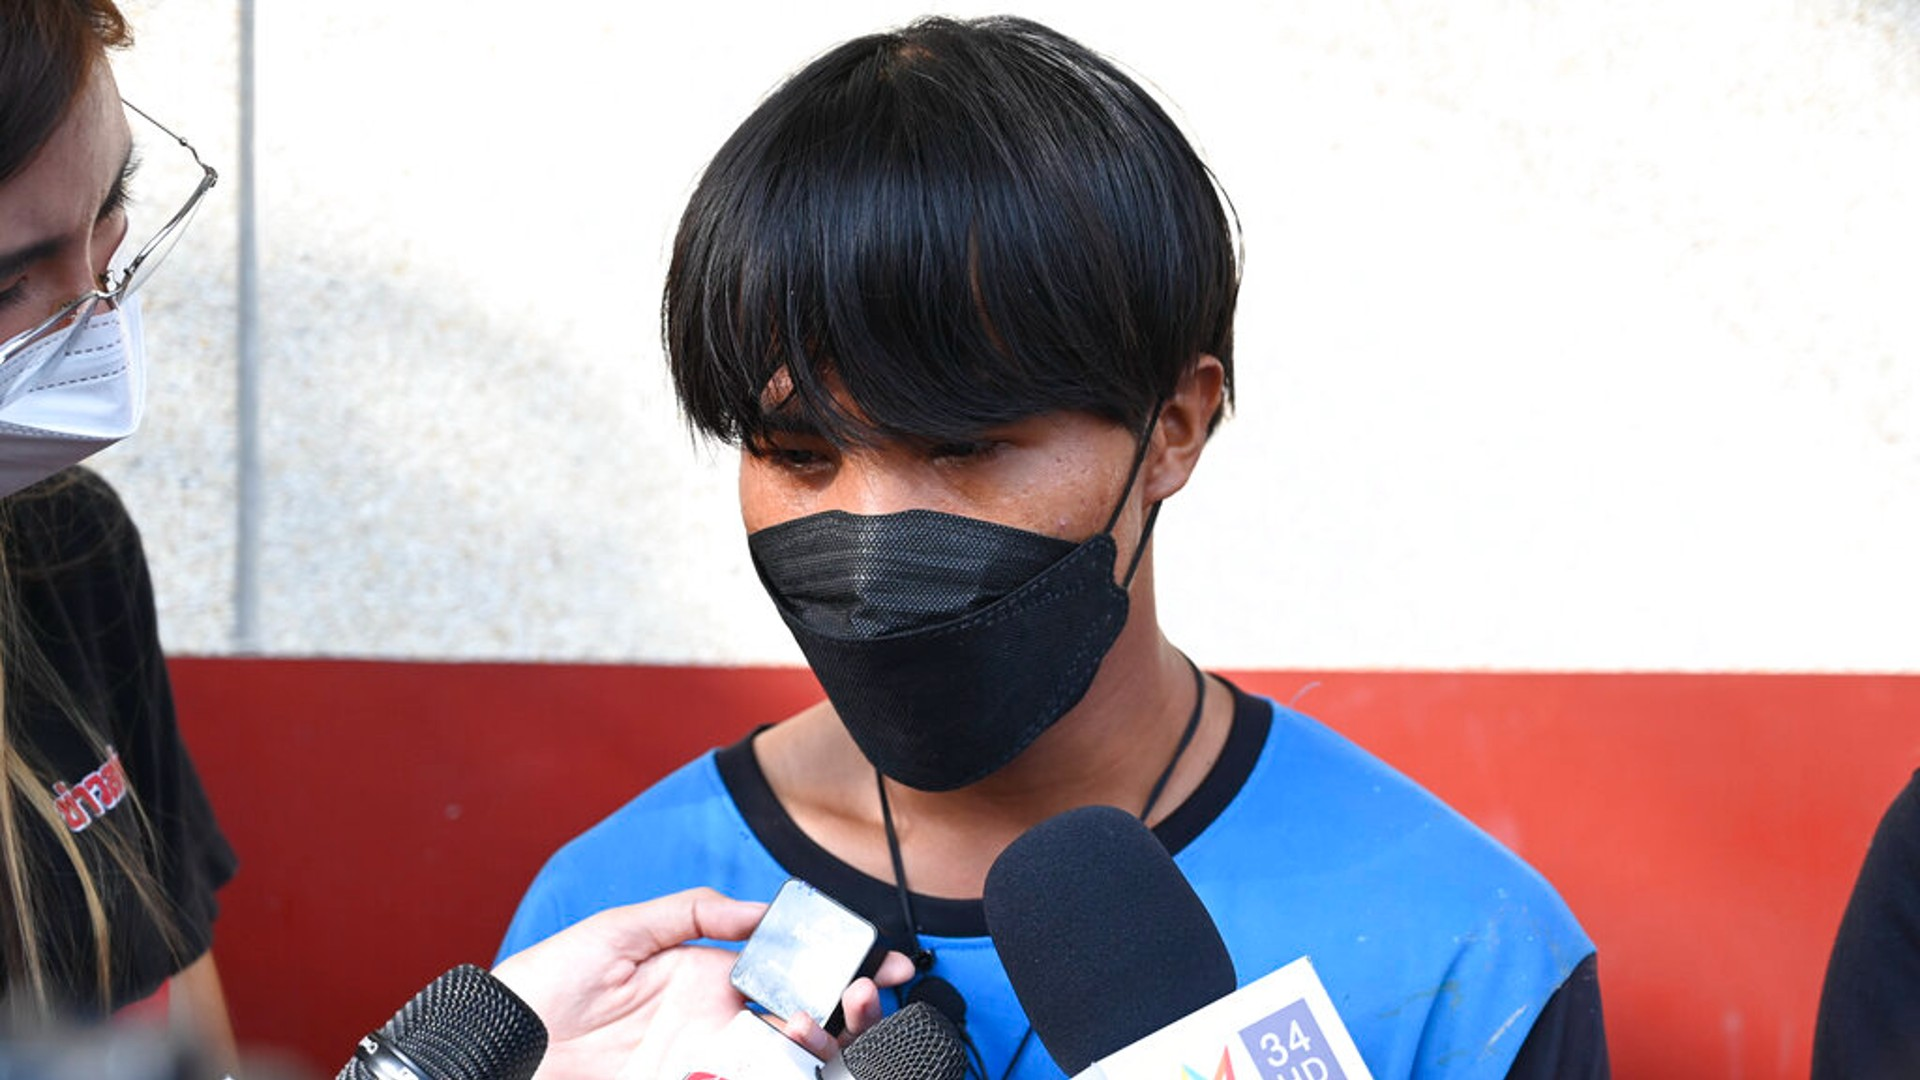 A Myanmar national identified as Song, one of two painters rescued from a high-rise condominium in Thailand, talks to reporters at Pak Kret police station in Nonthaburi near Bangkok, Wednesday, Oct. 27, 2021. (AP Photo/Surat Sappakun)